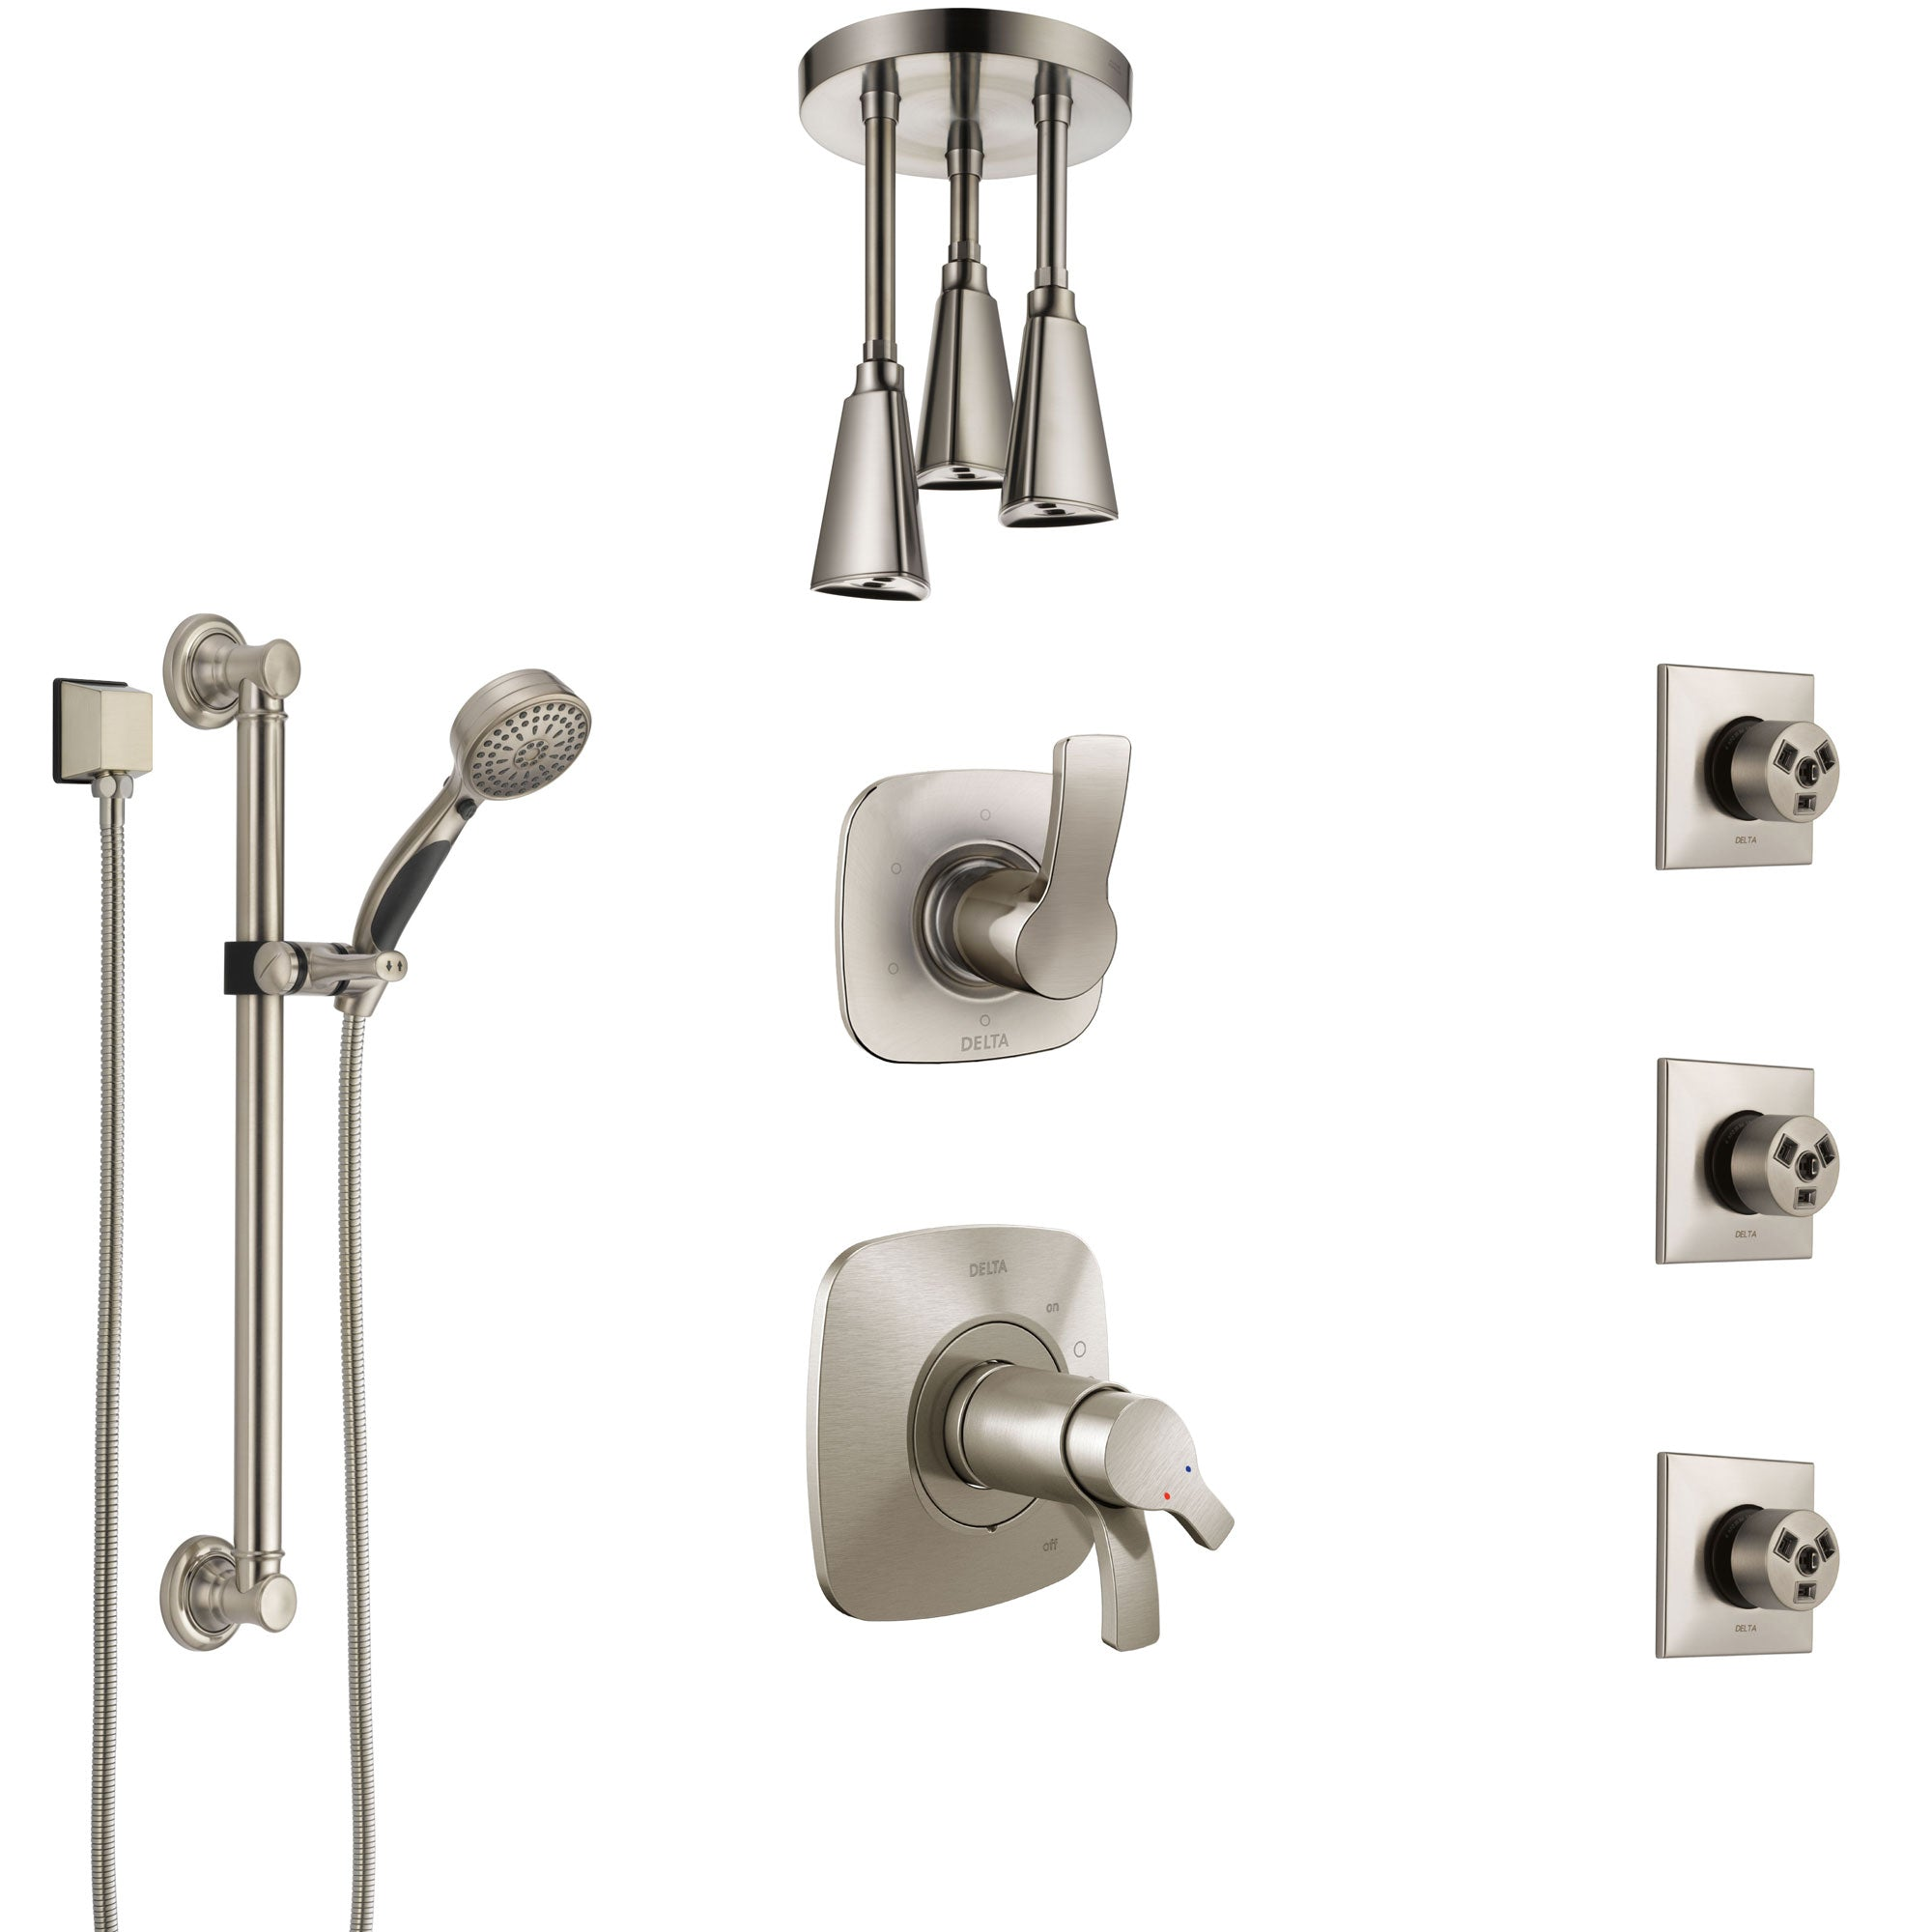 Delta Tesla Dual Thermostatic Control Stainless Steel Finish Shower System, Diverter, Ceiling Showerhead, 3 Body Jets, Grab Bar Hand Spray SS17T521SS3